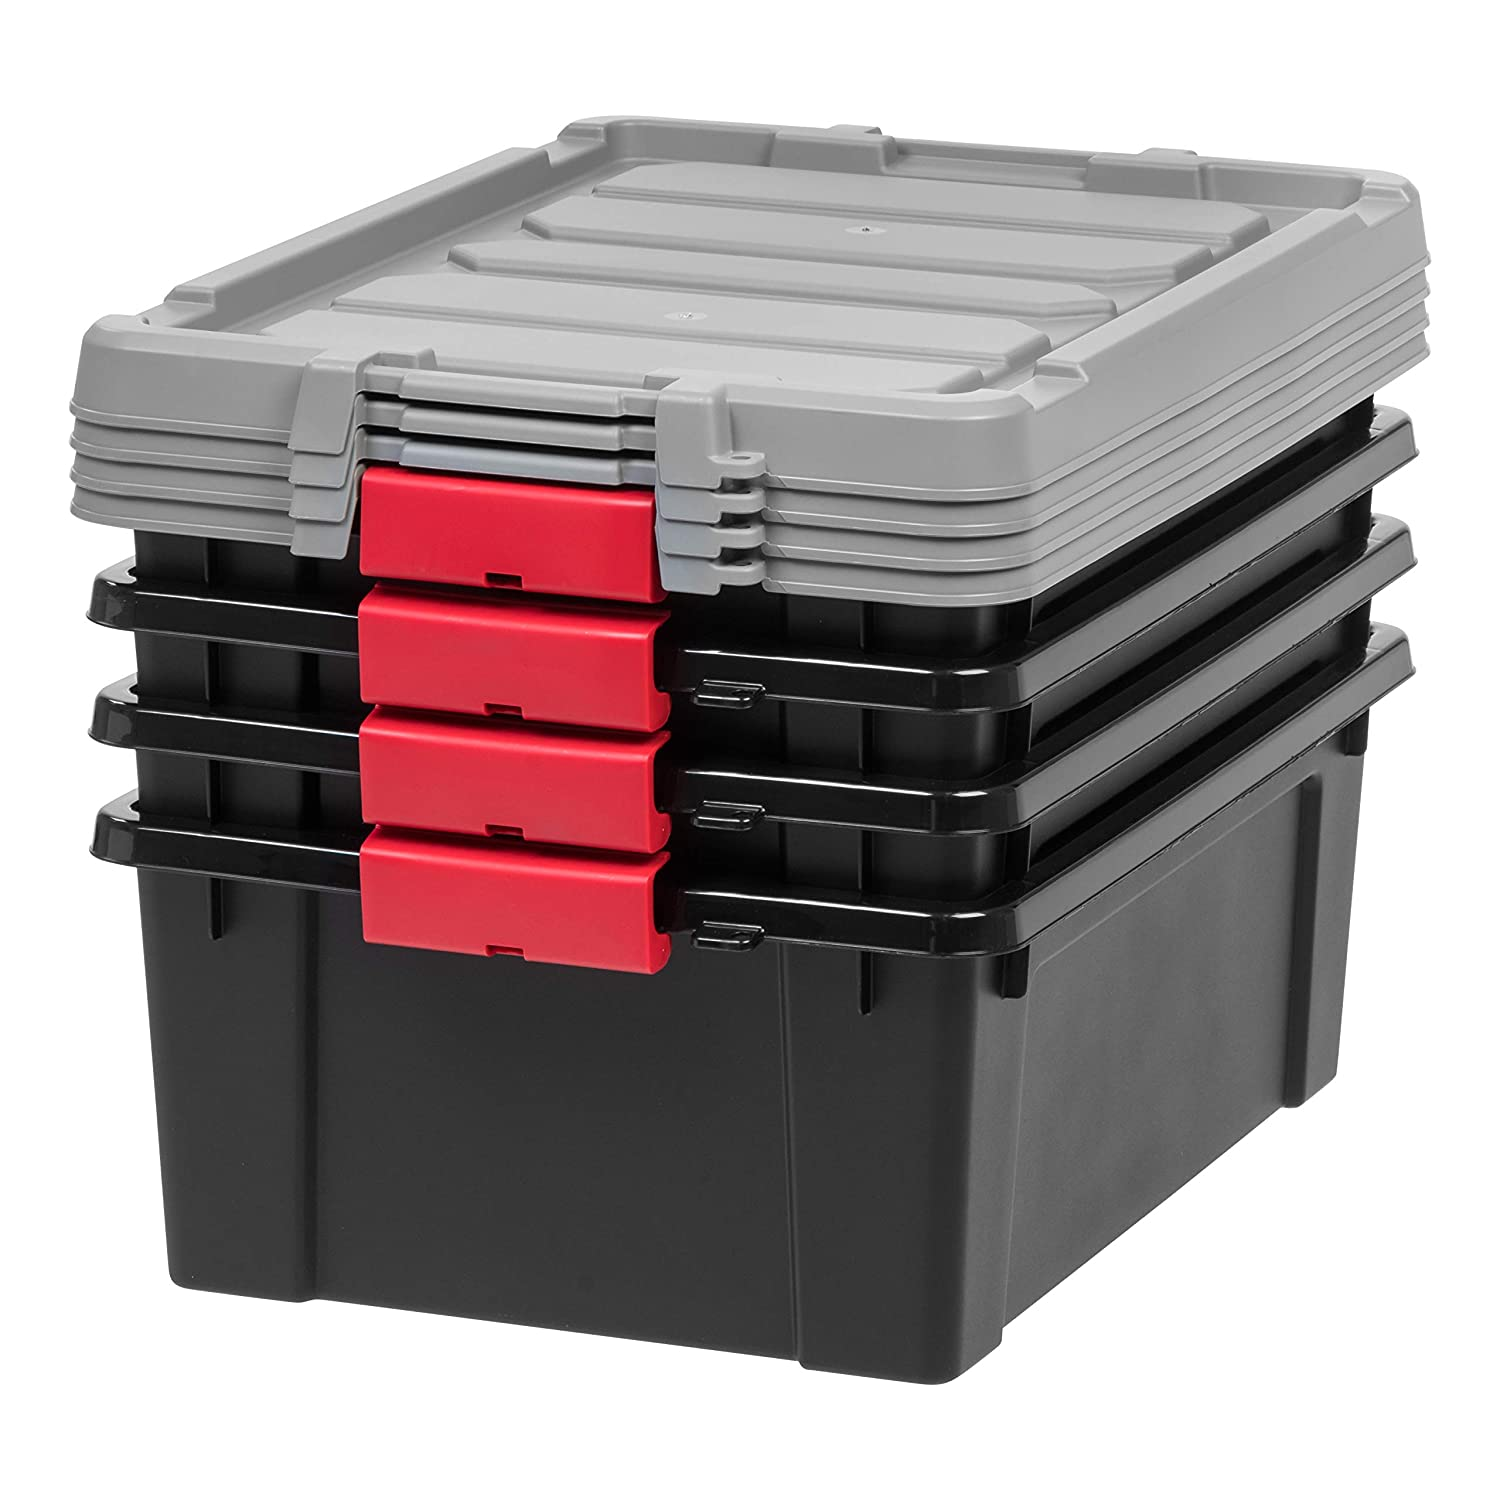 IRIS USA, Inc. SIA-10 Store-It-All Tote, 4 Pack, 11.75, Black/Red Buckle